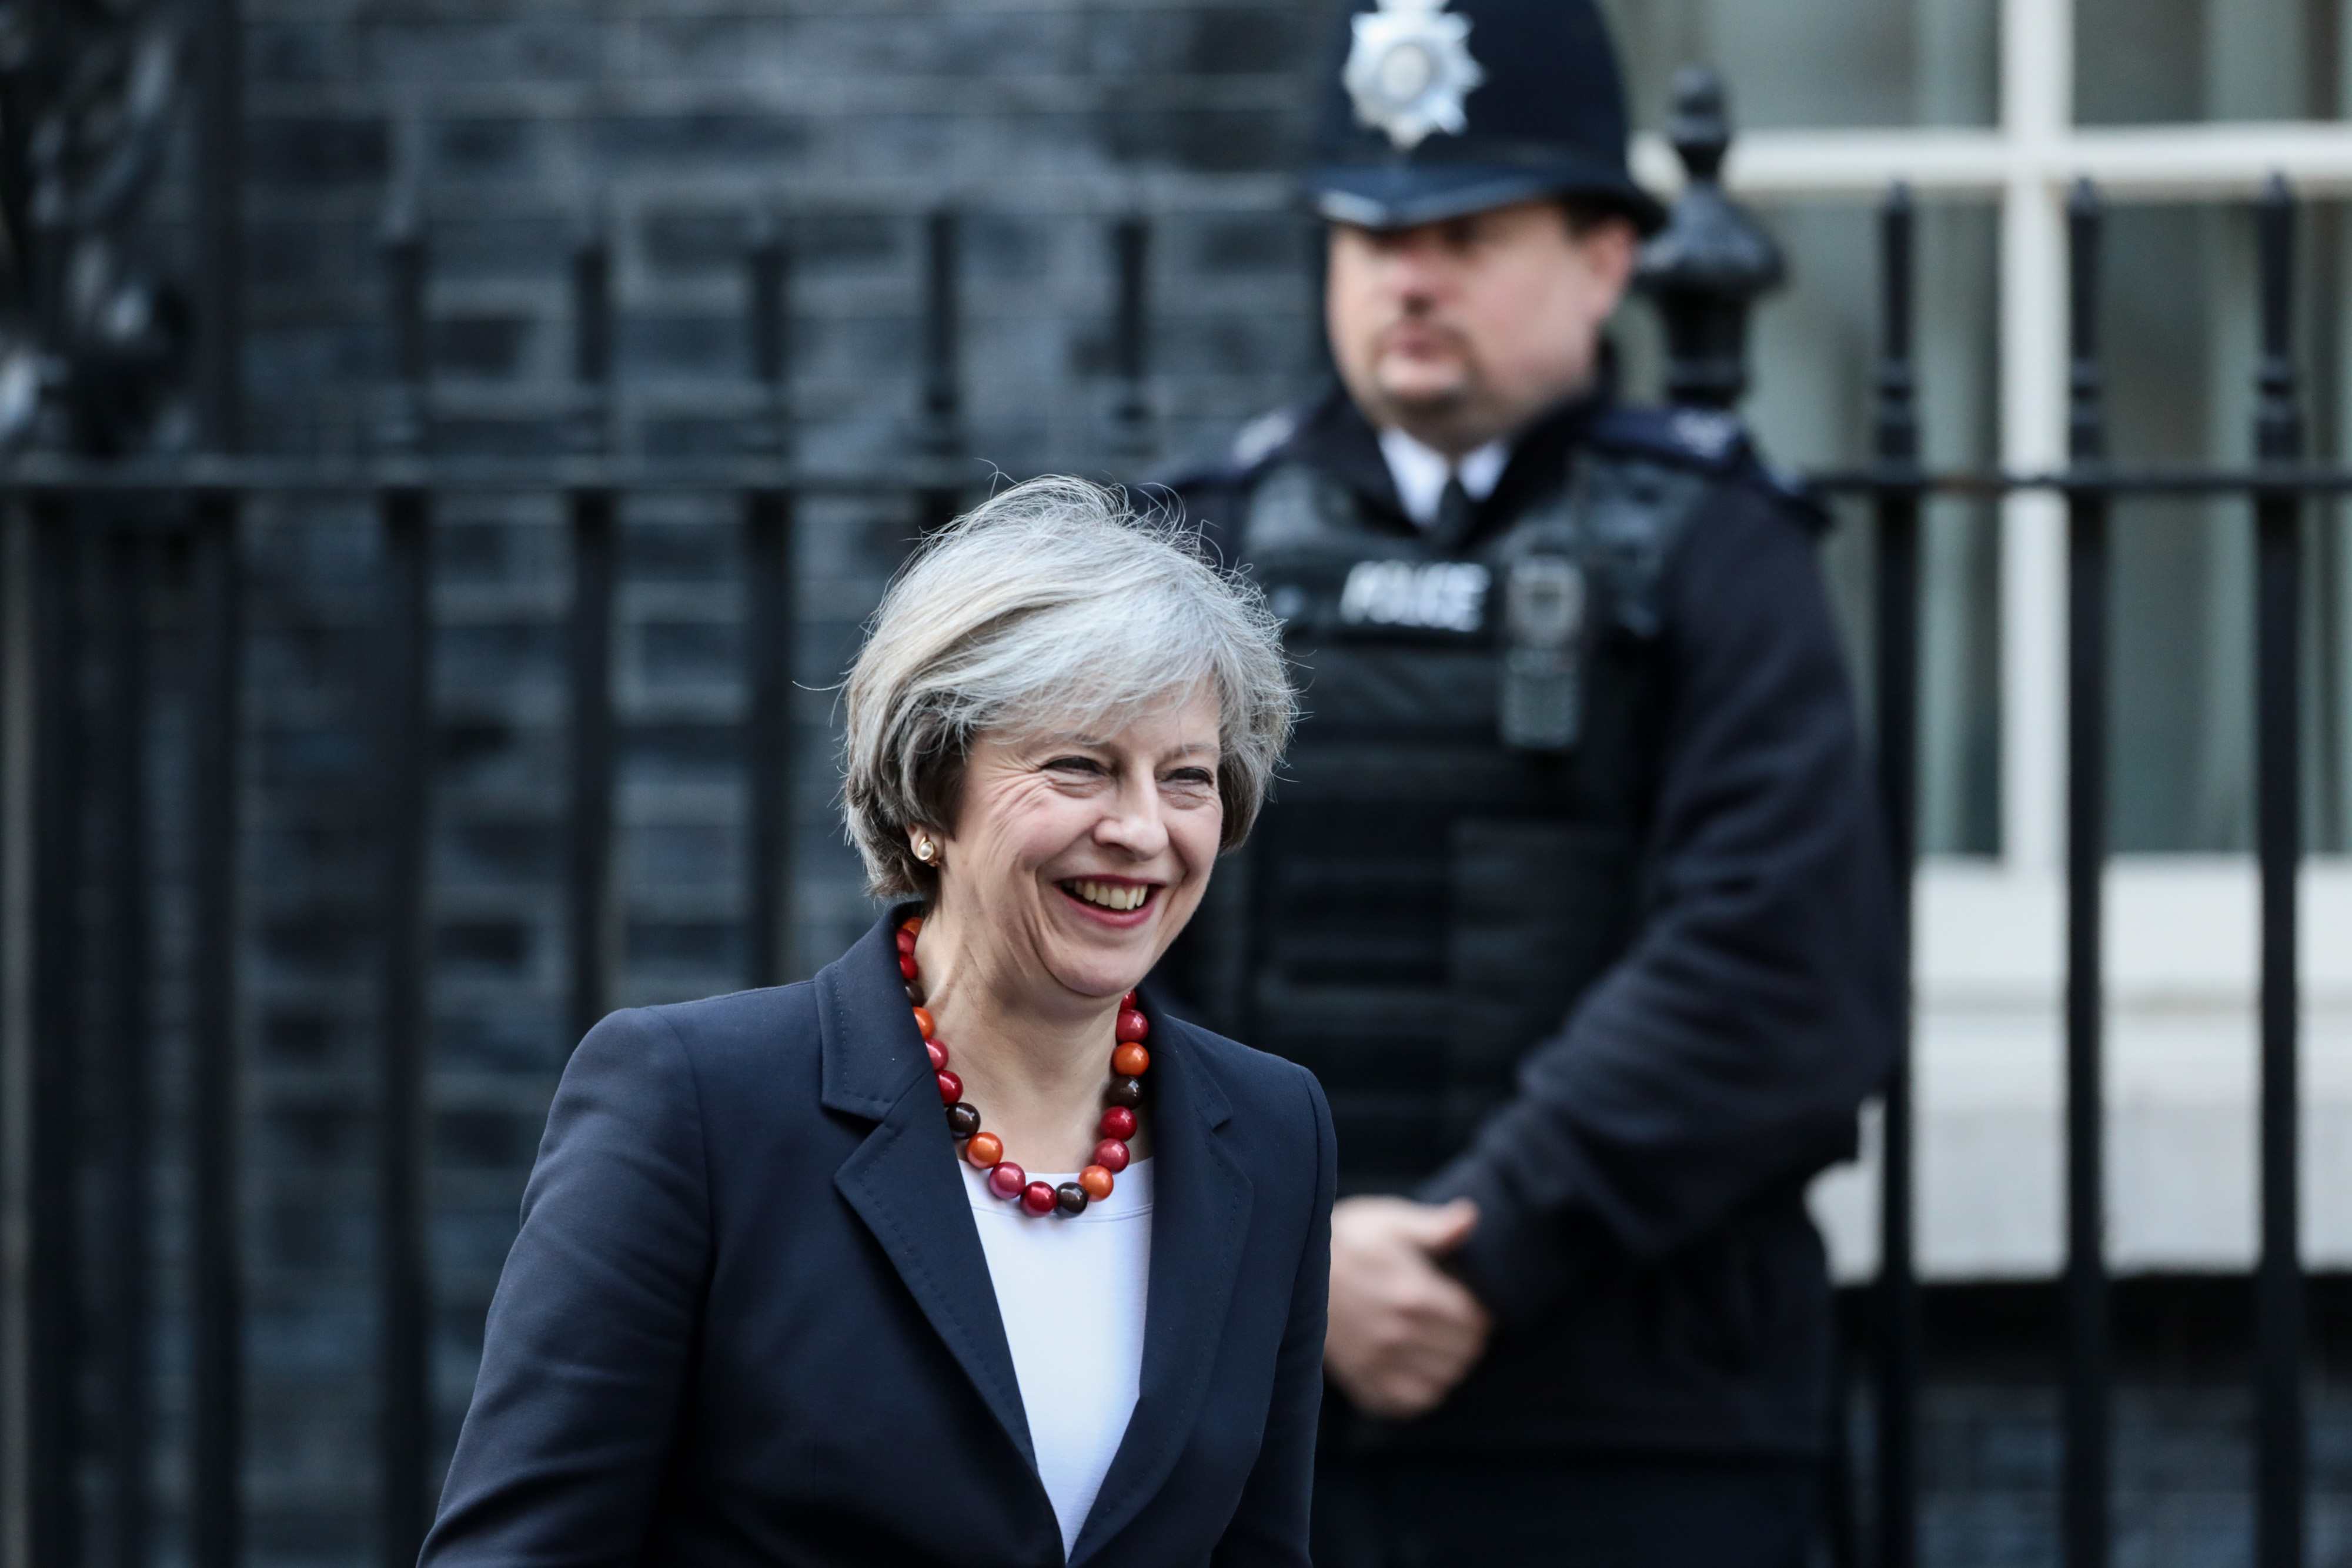 Theresa May, U.K. prime minister, leaves 10 Downing Street to greet France's Prime Minister Bernard Cazeneuve (not pictured) , on Friday, Feb. 17, 2017 in London, U.K.